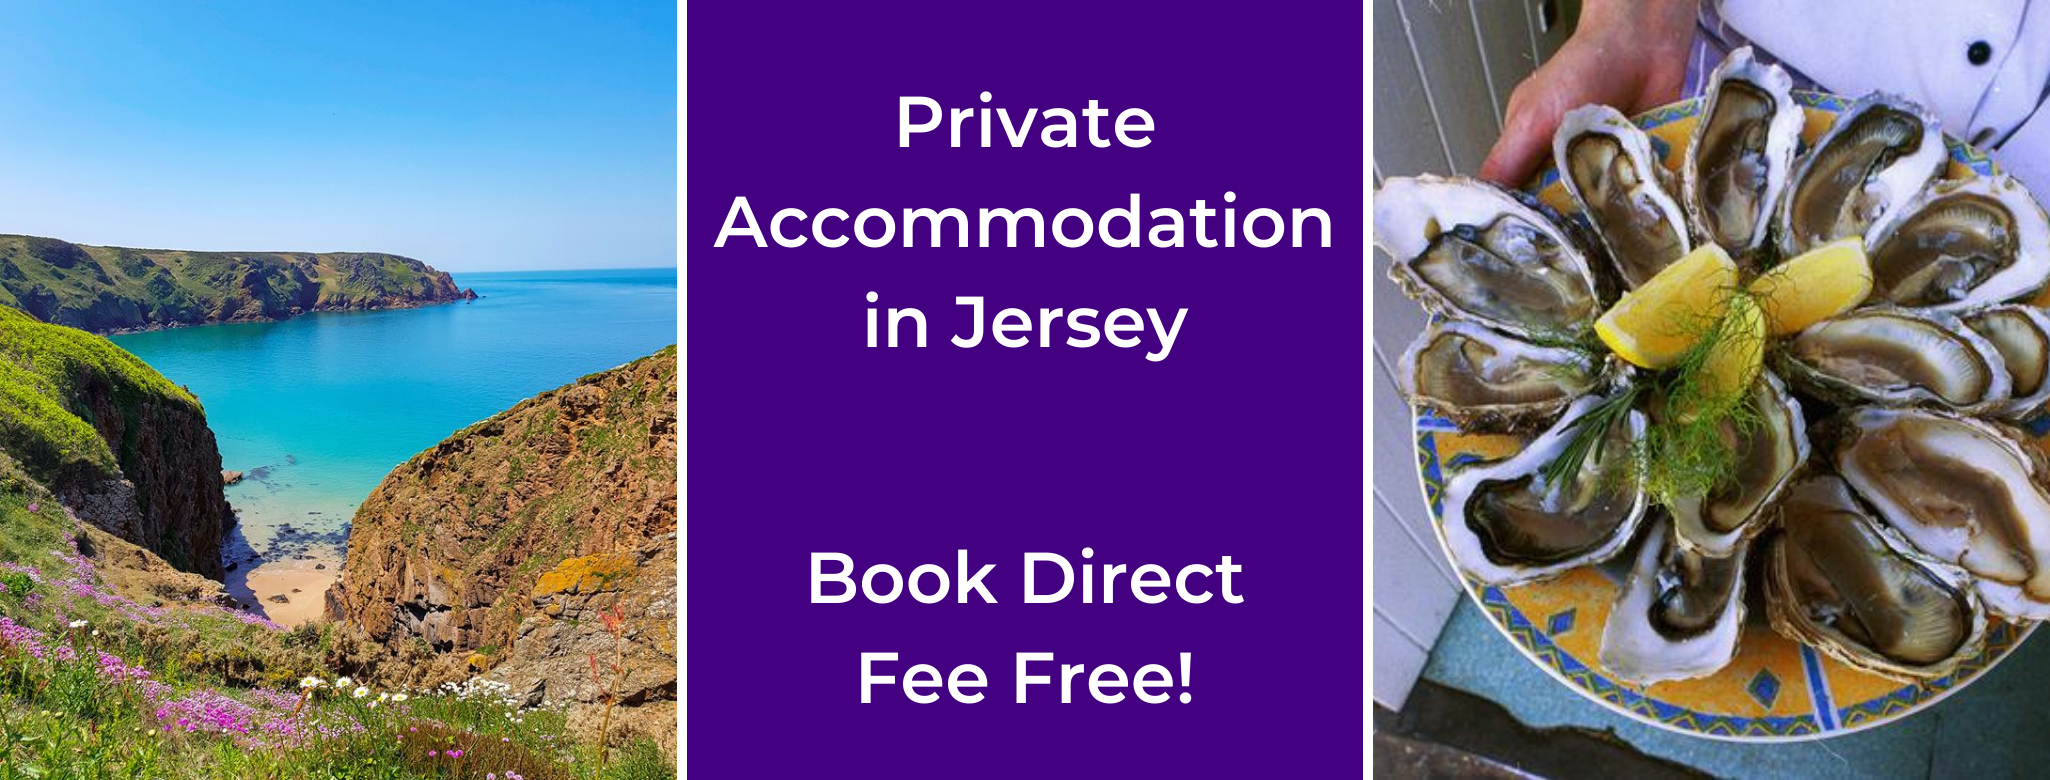 Private Accommodation in Jersey